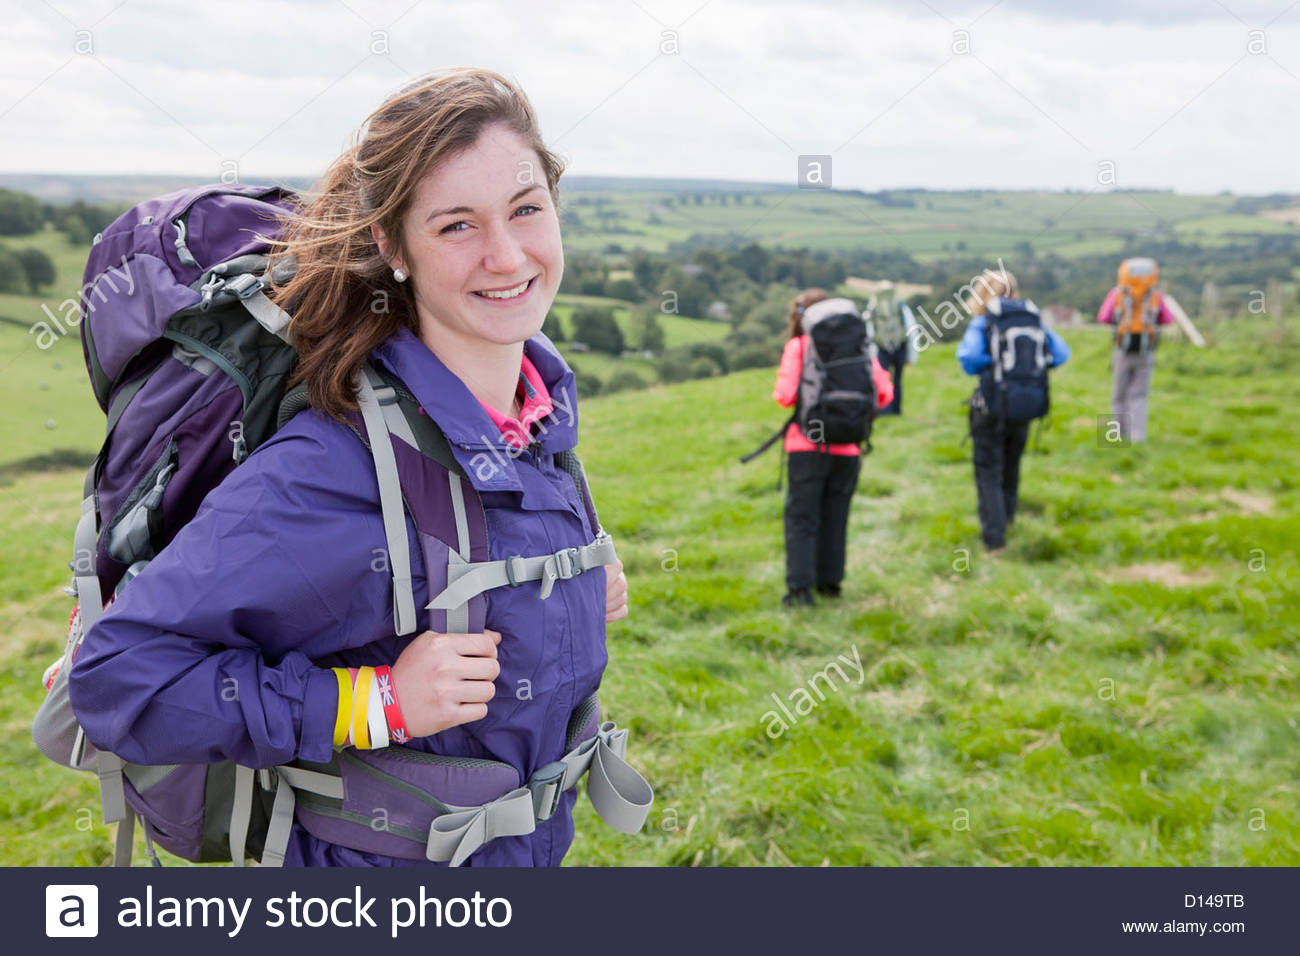 Portrait of smiling girl with backpack in field - Stock Image